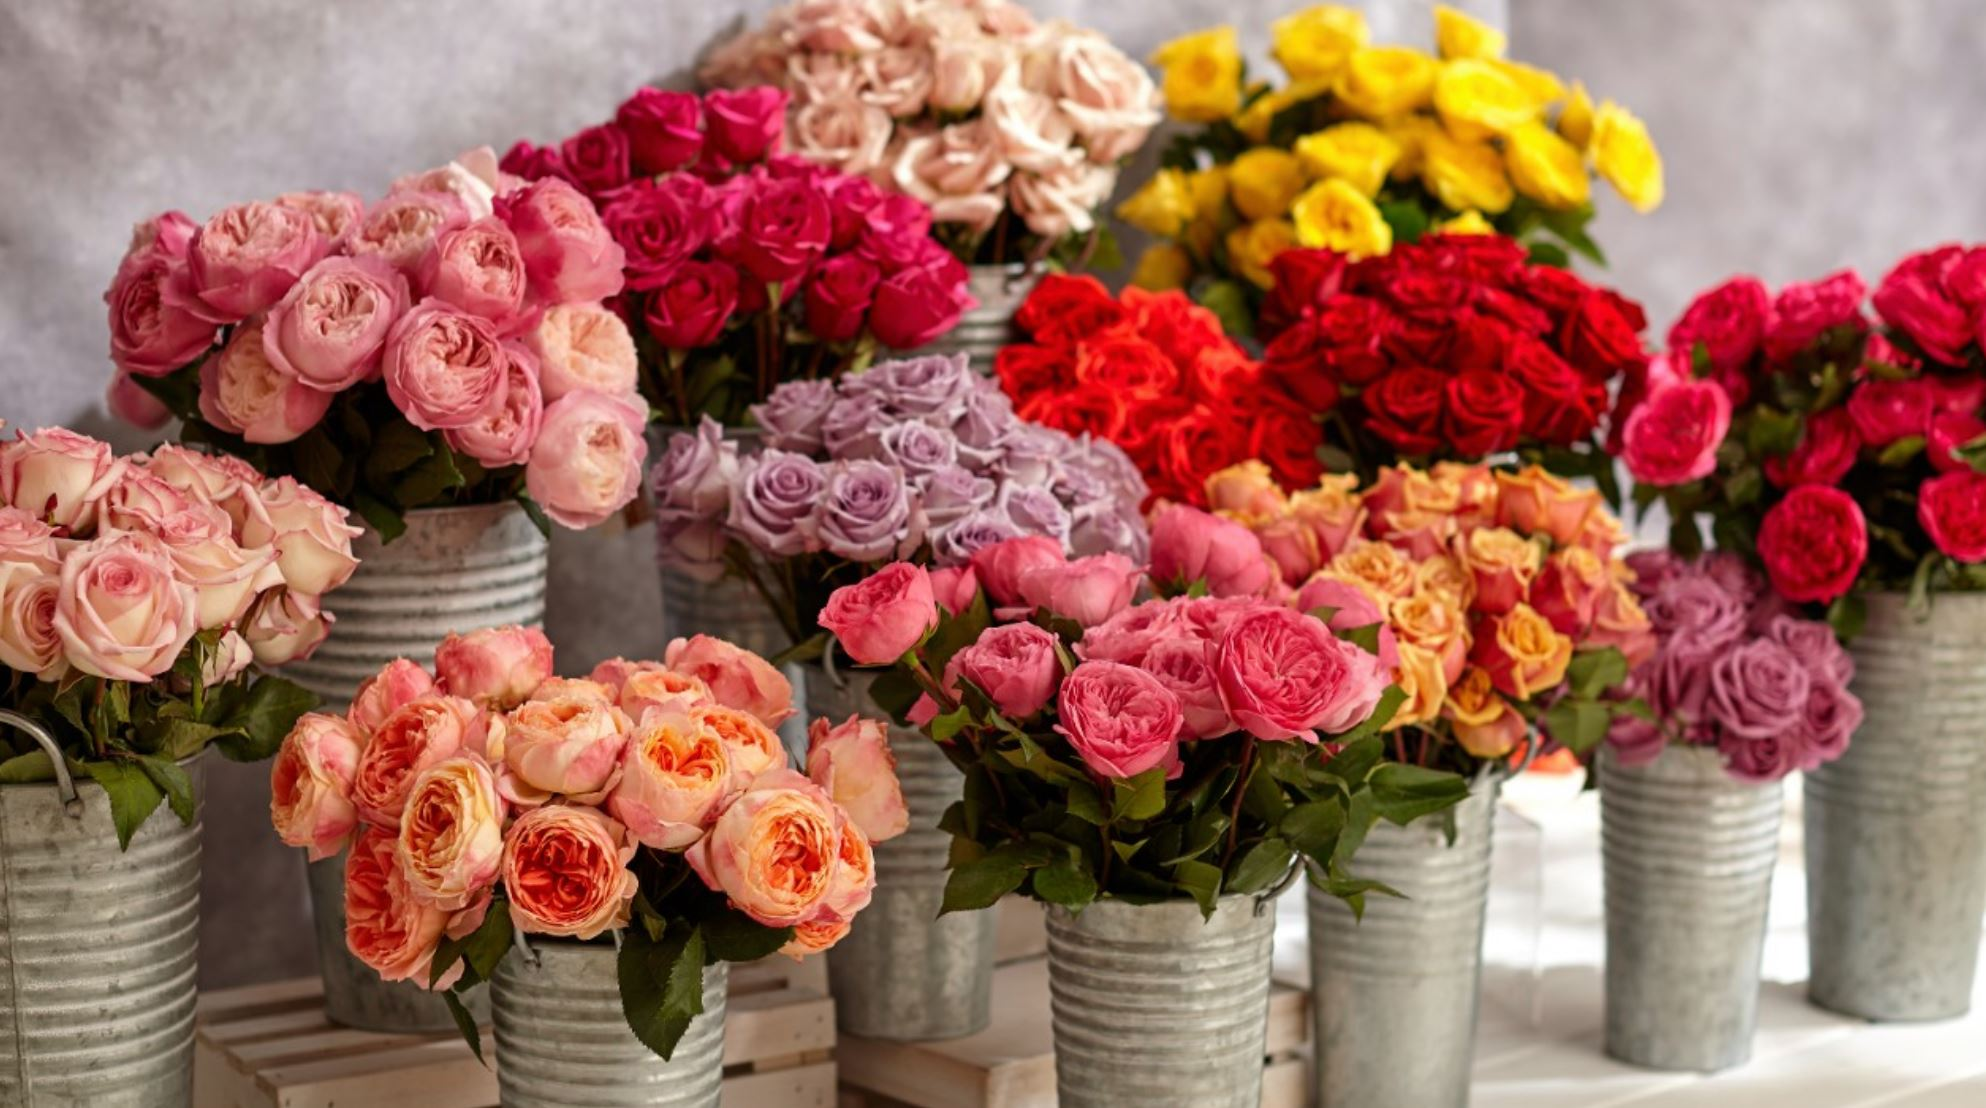 Order early and save big for Valentine's day with FTD